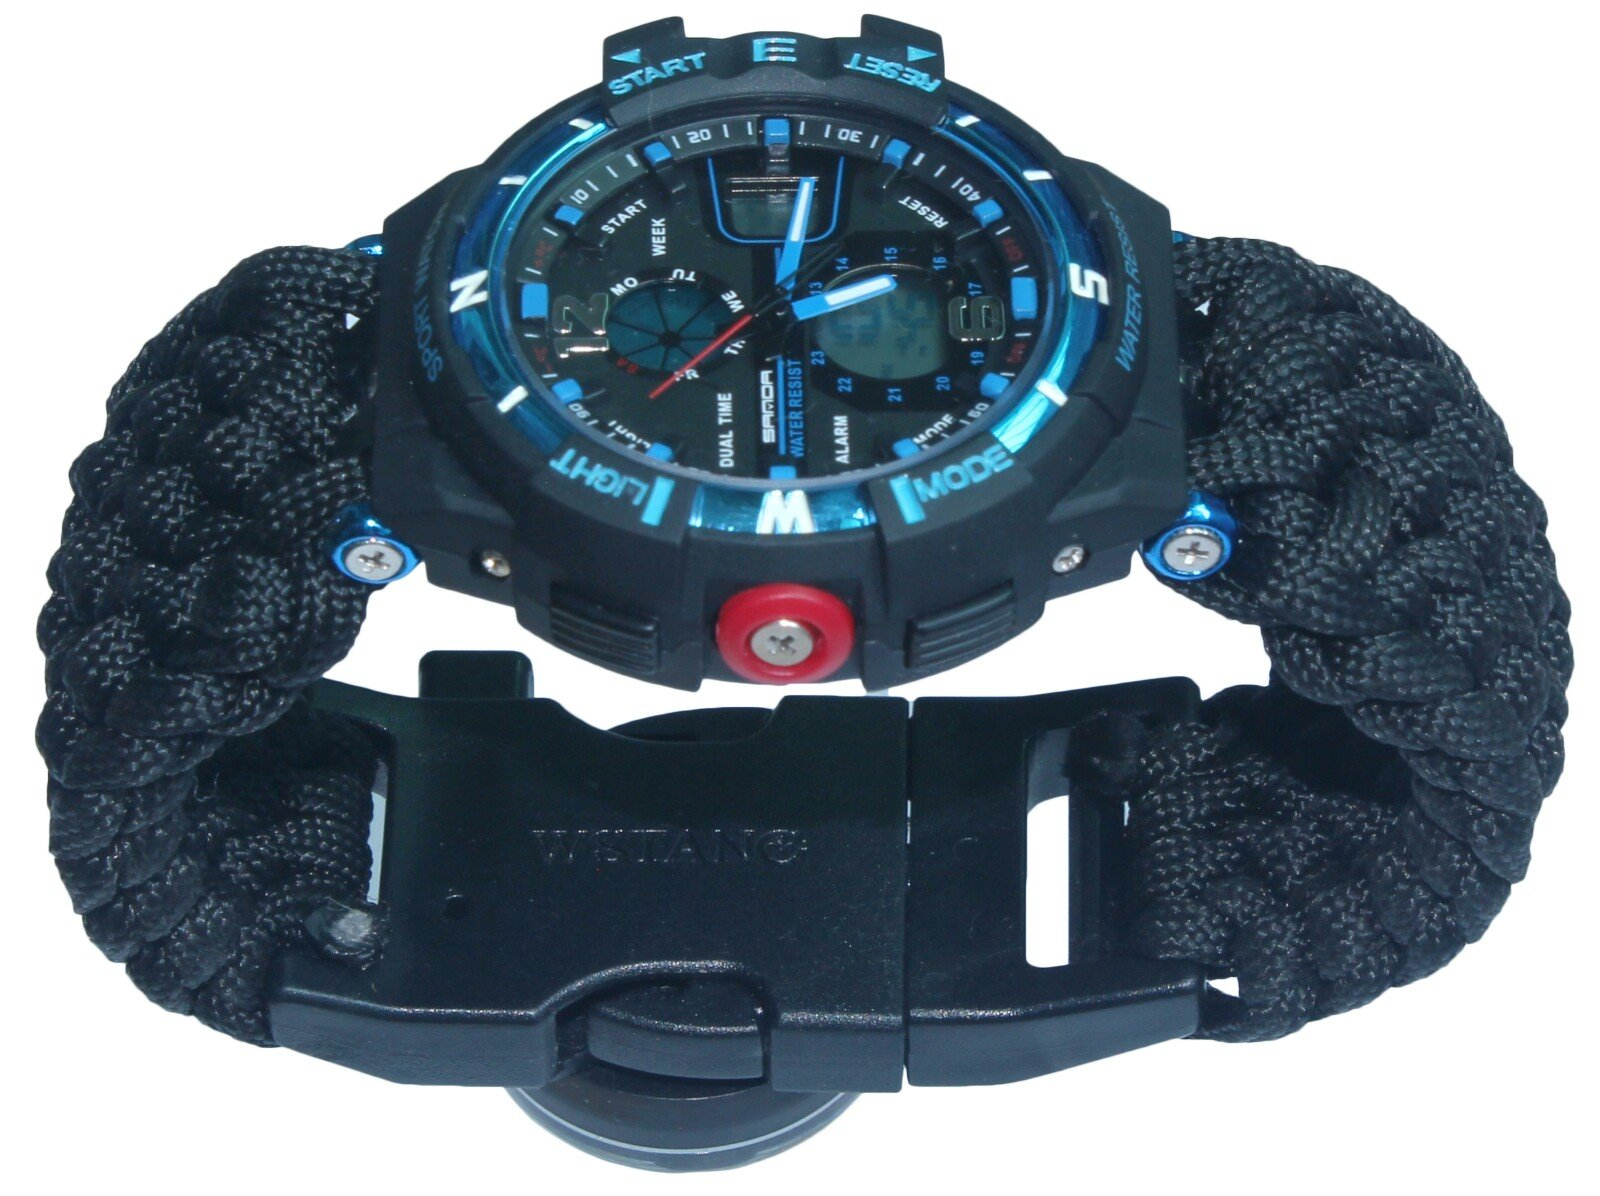 Men Child Boy Emergency Survival Watch Paracord Compass Whistle Fire Starter Analog Watches Survival Gear Water Resistant